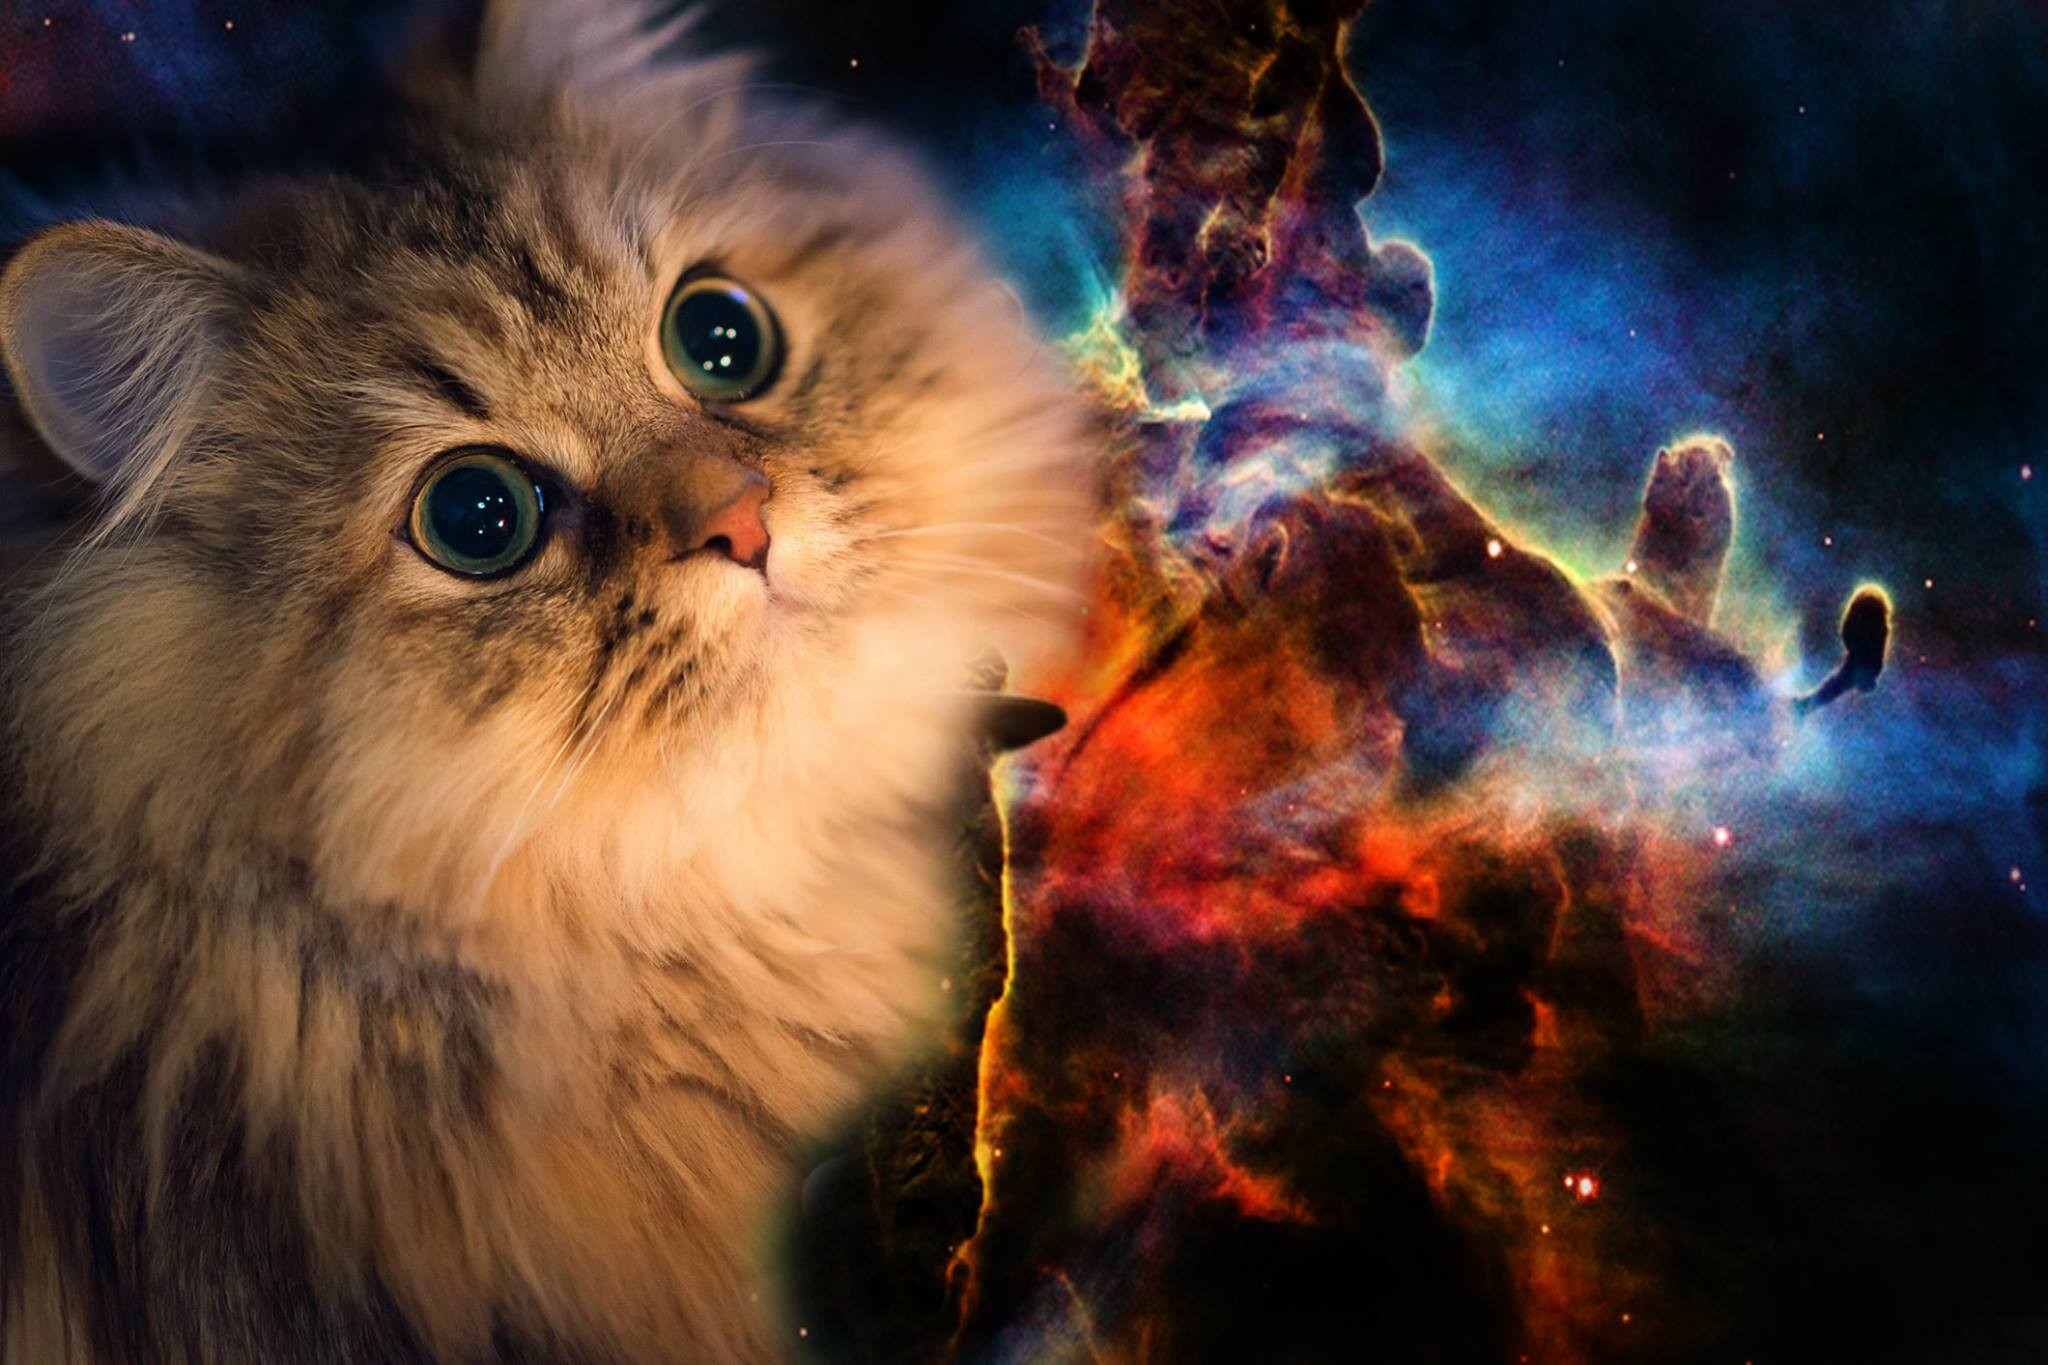 Collection of Galaxy Cat Wallpaper on HDWallpapers Galaxy cat wallpaper  Wallpapers)